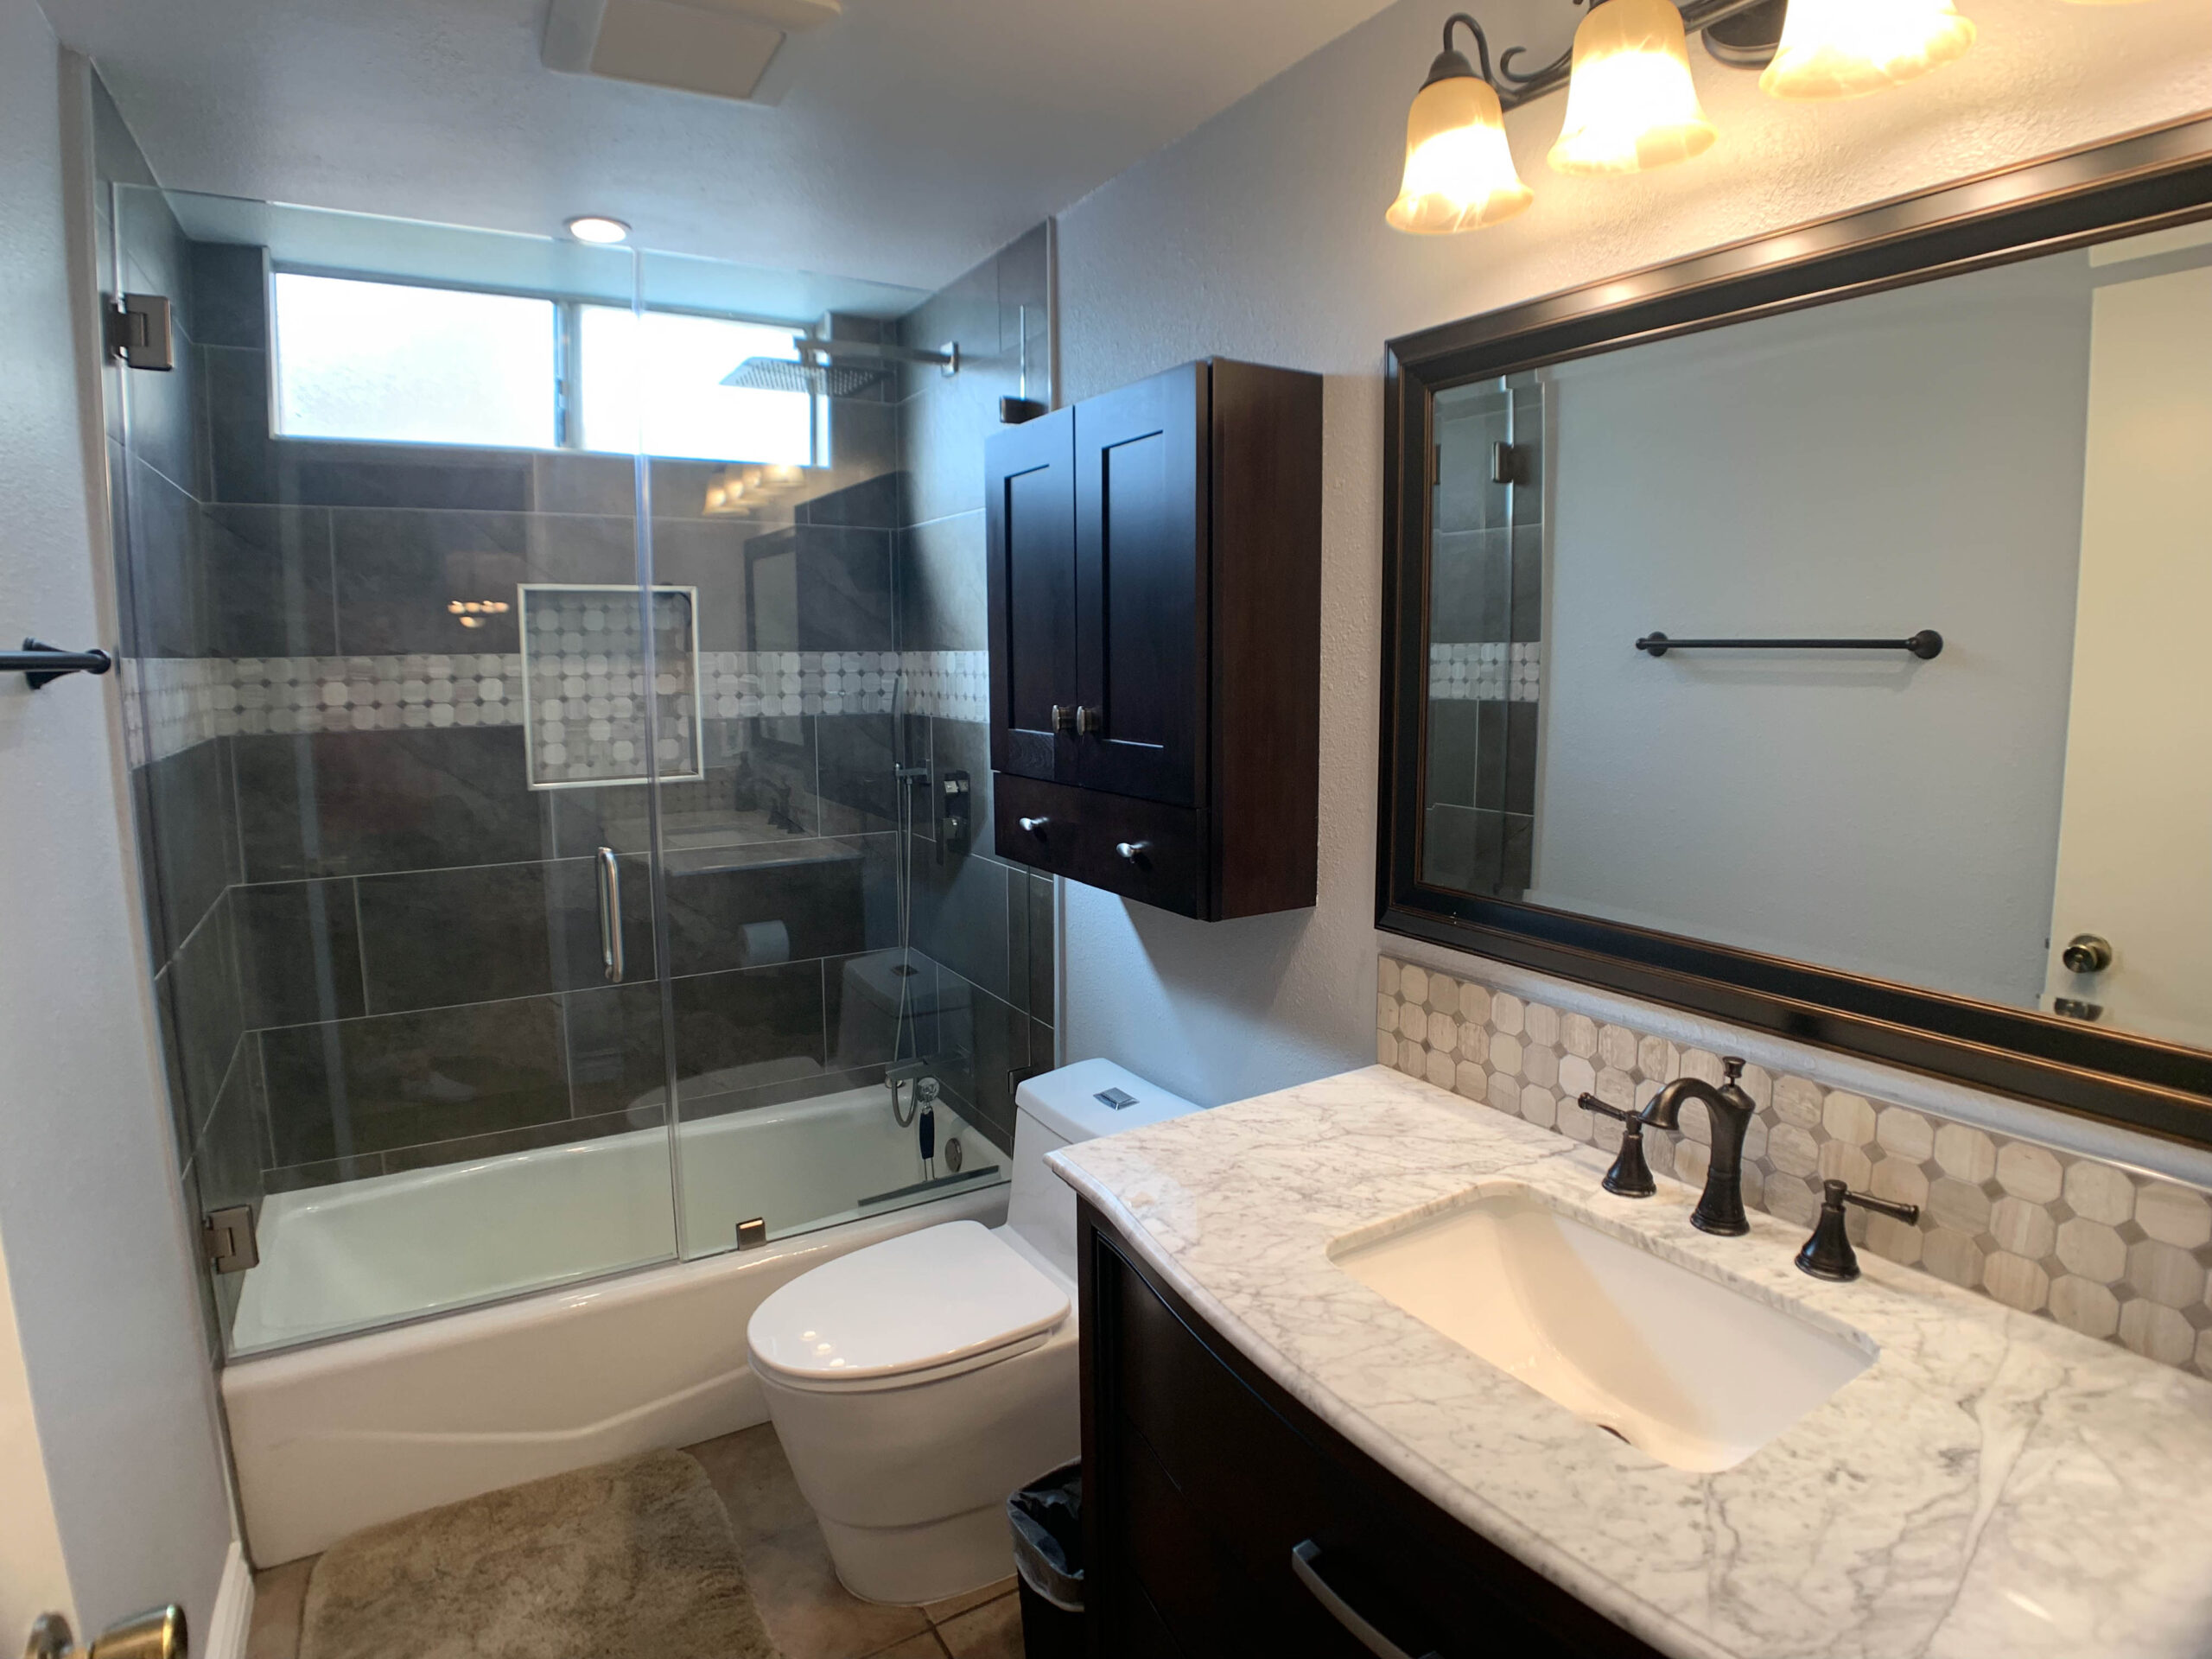 Bathrooms Remodels in Simi Valley CA